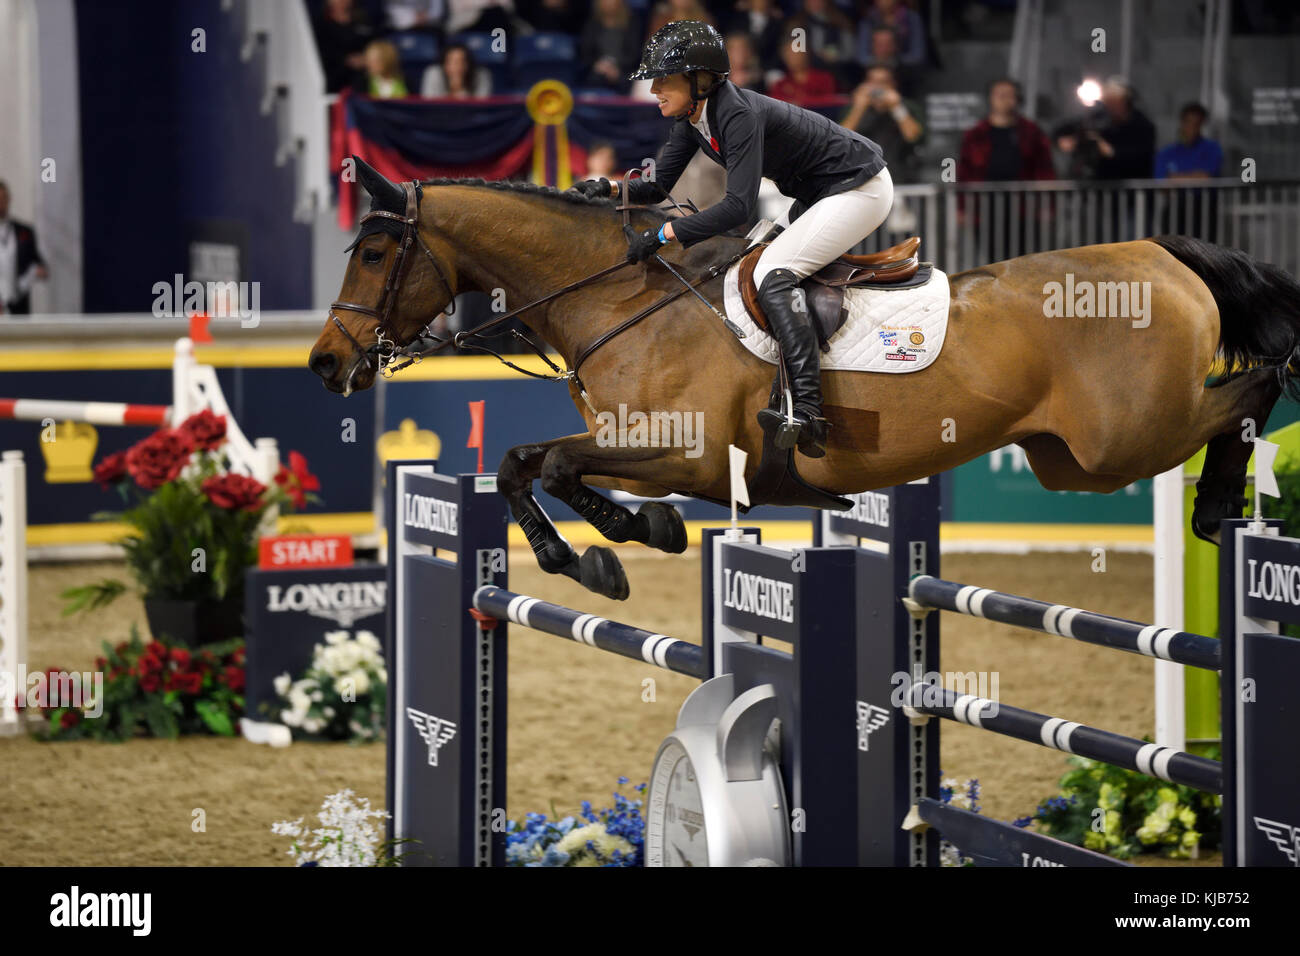 Amy Miller Canada riding Heros in the Longines FEI World Cup Show Jumping competition at the Royal Horse Show Toronto - Stock Image